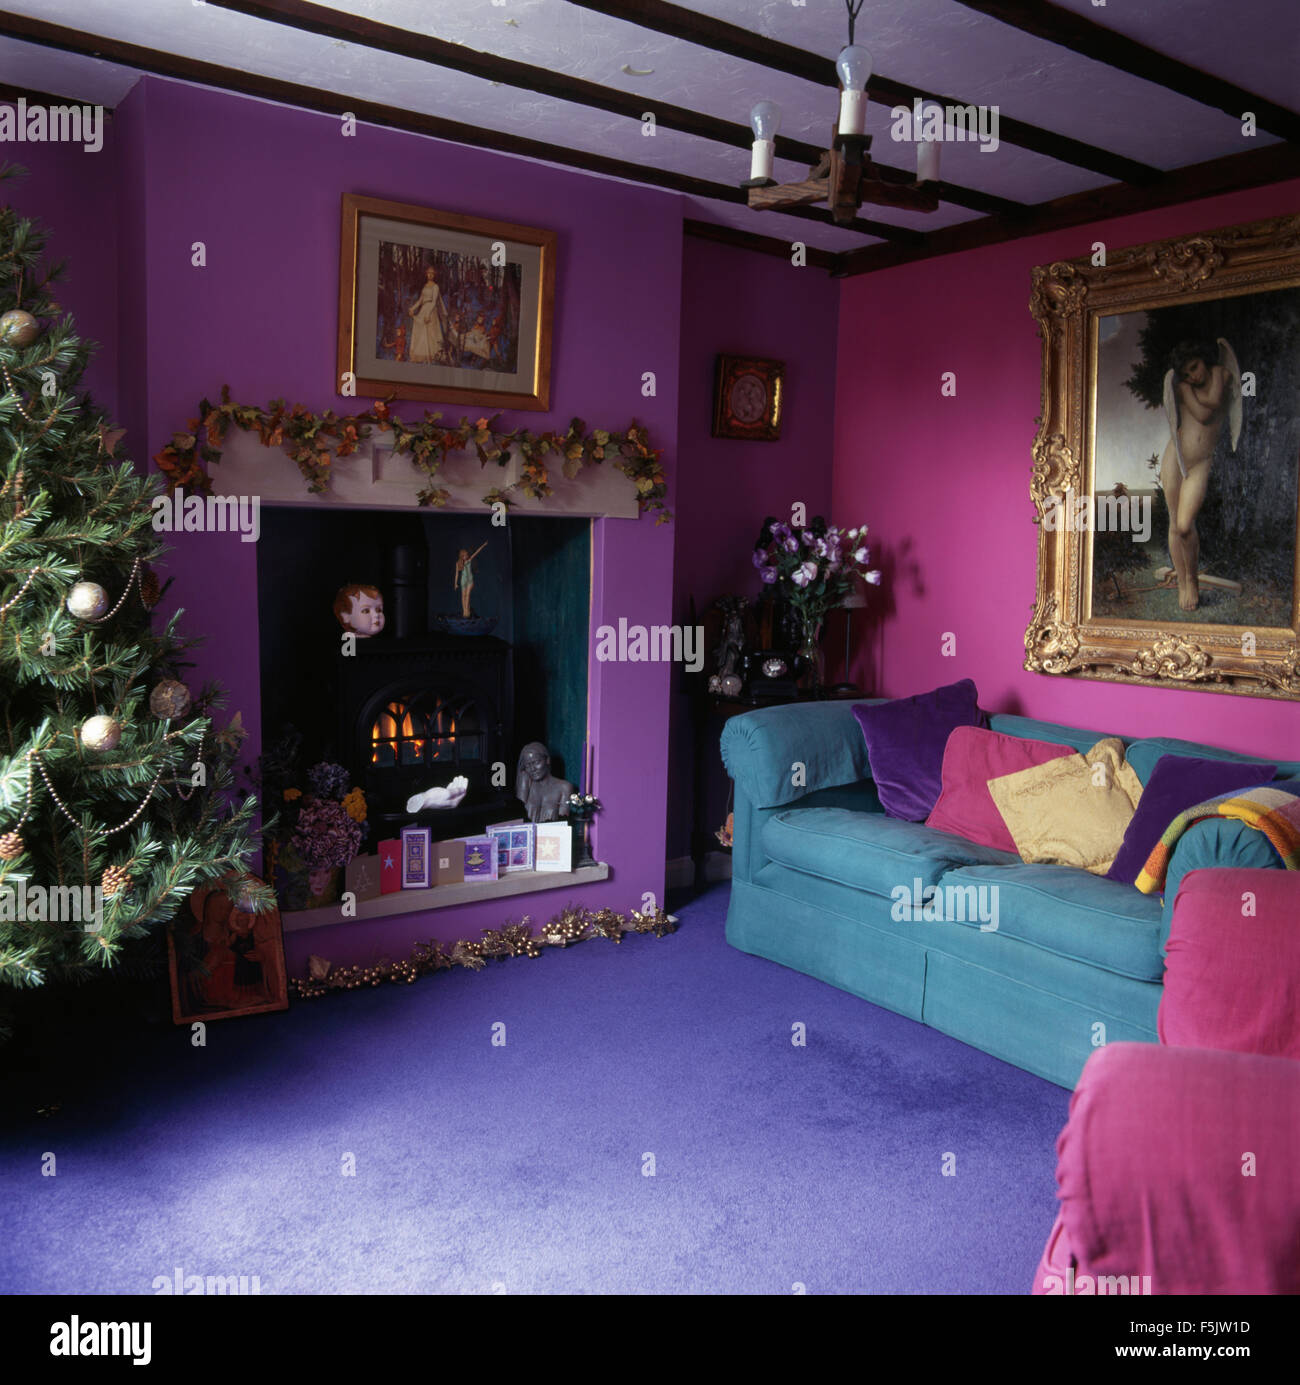 Rich Blue And Pink Interior Decorating Paint Colors And Modern Color Trends: Bright Blue Carpet And Turquoise Sofa In Purple And Pink